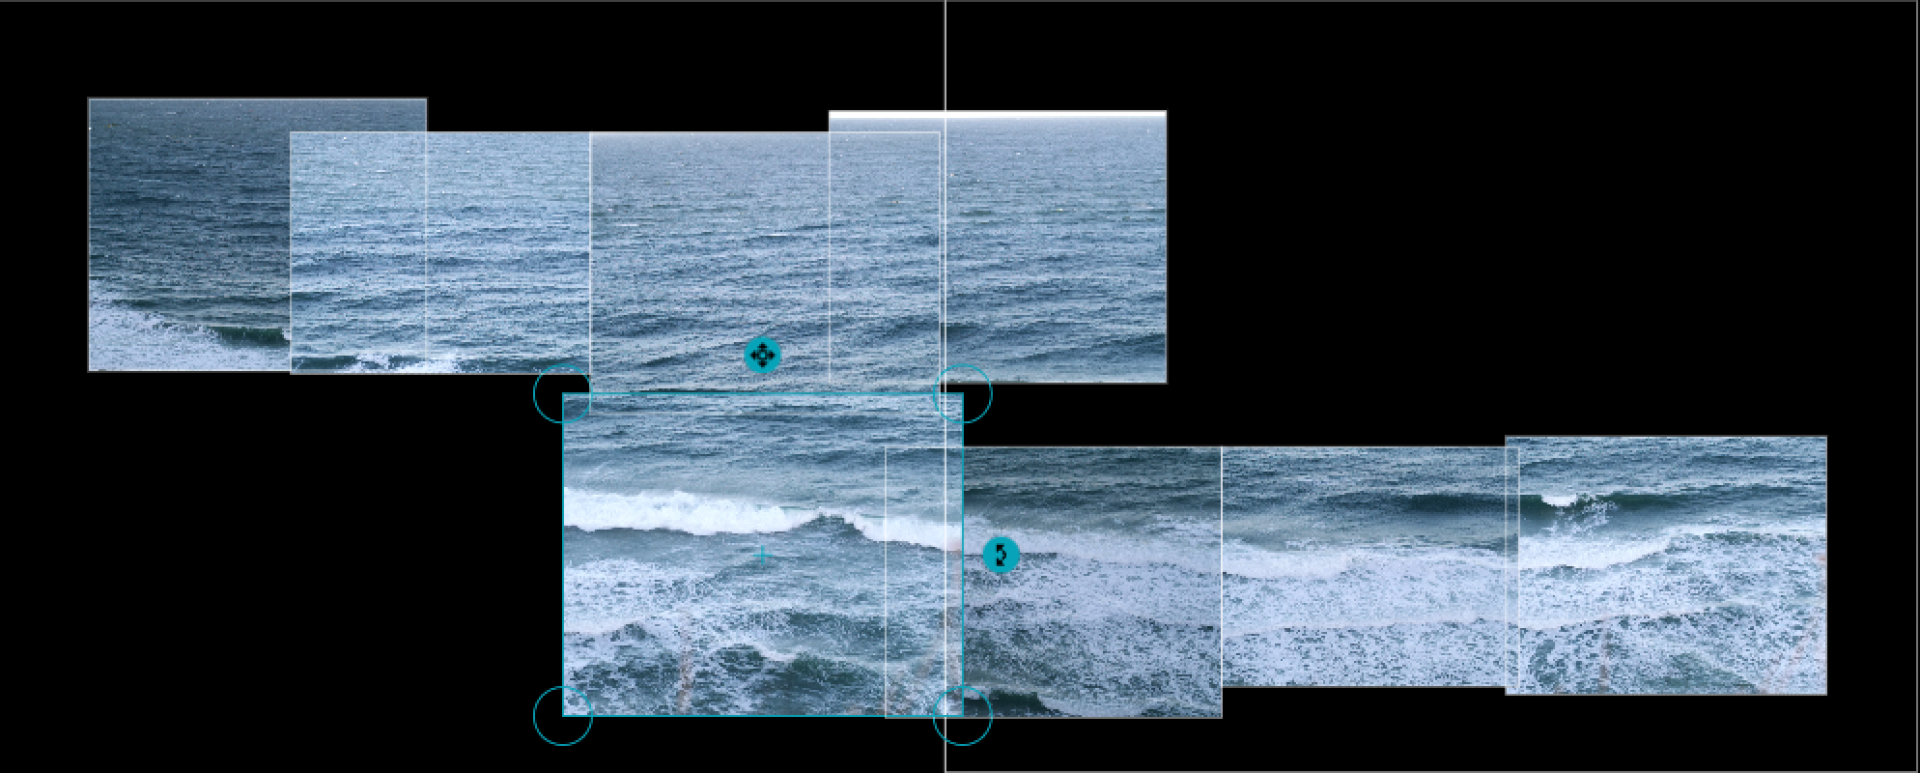 A spread of wave images